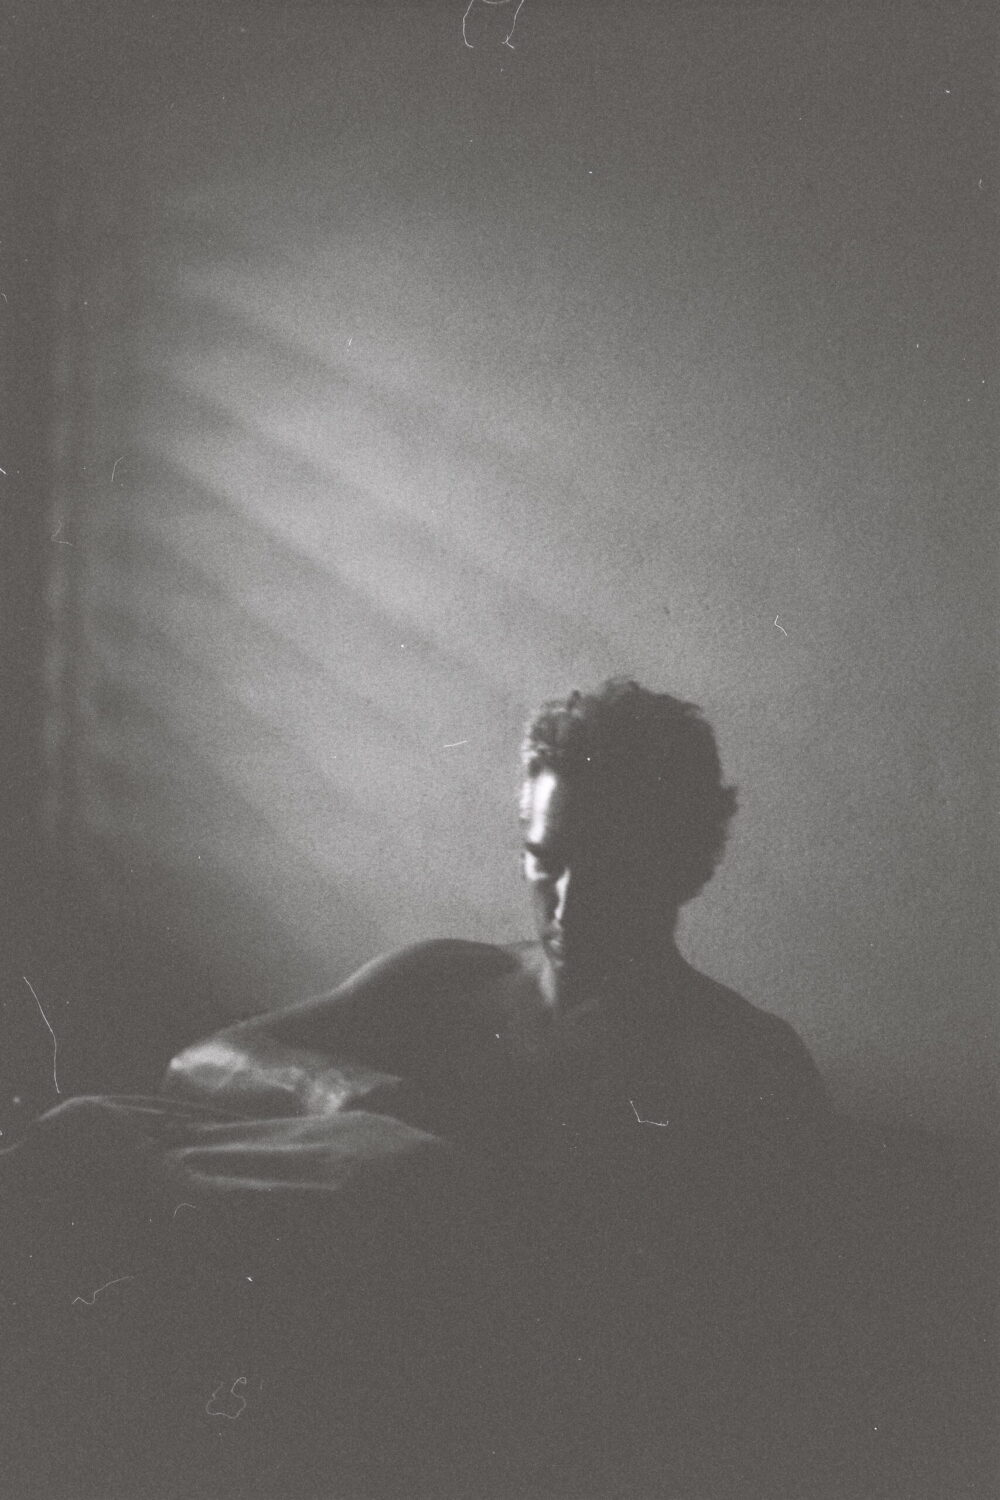 black and white image of man sewing